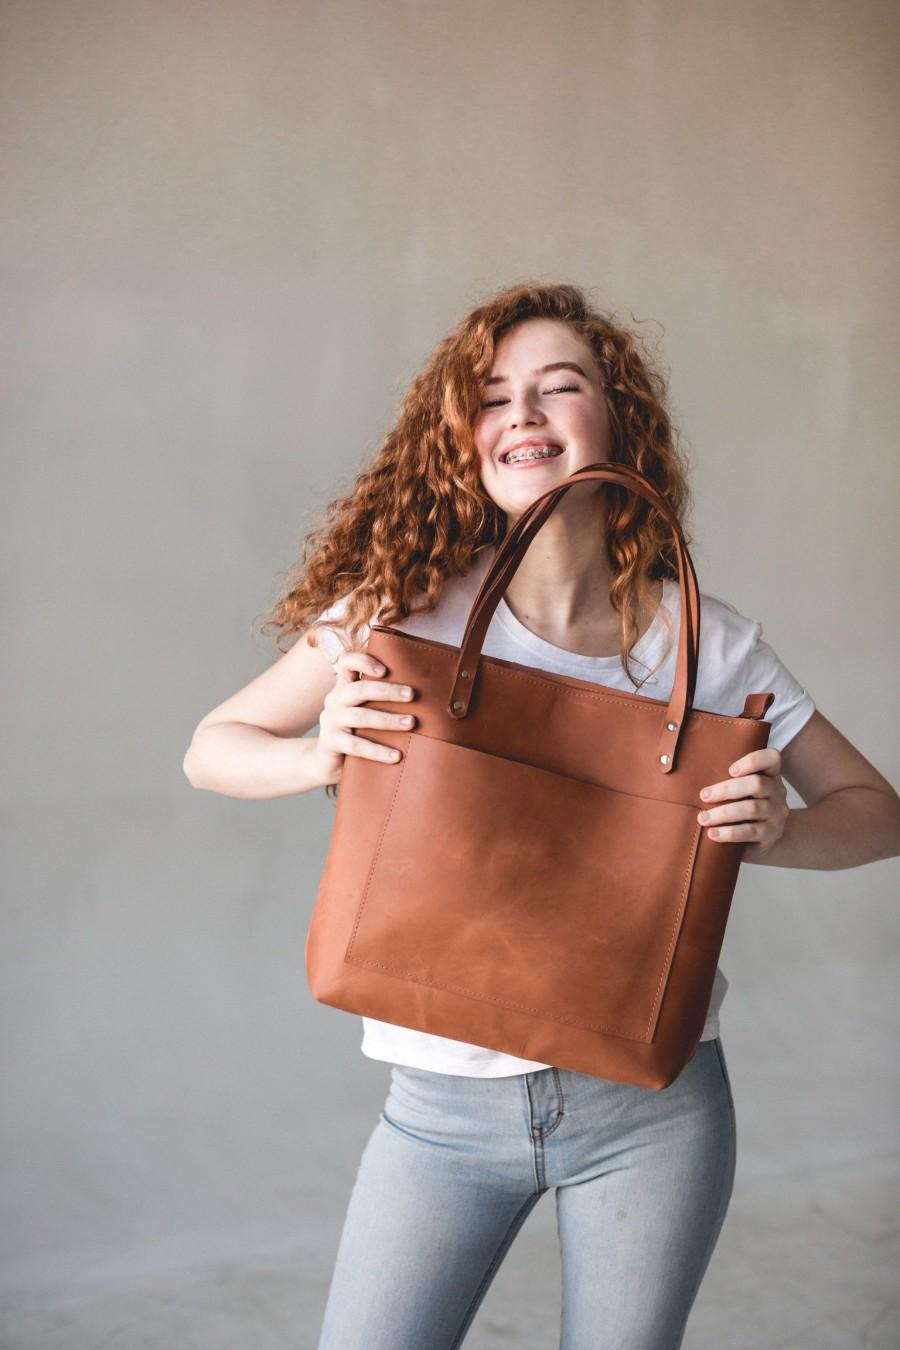 Wedding - Genuine Perfectly Brown Leather Tote Bag For Women • Monogram Crossbody Purse • Leather Shoulder Bag With Pockets • Full Grain Leather Bag